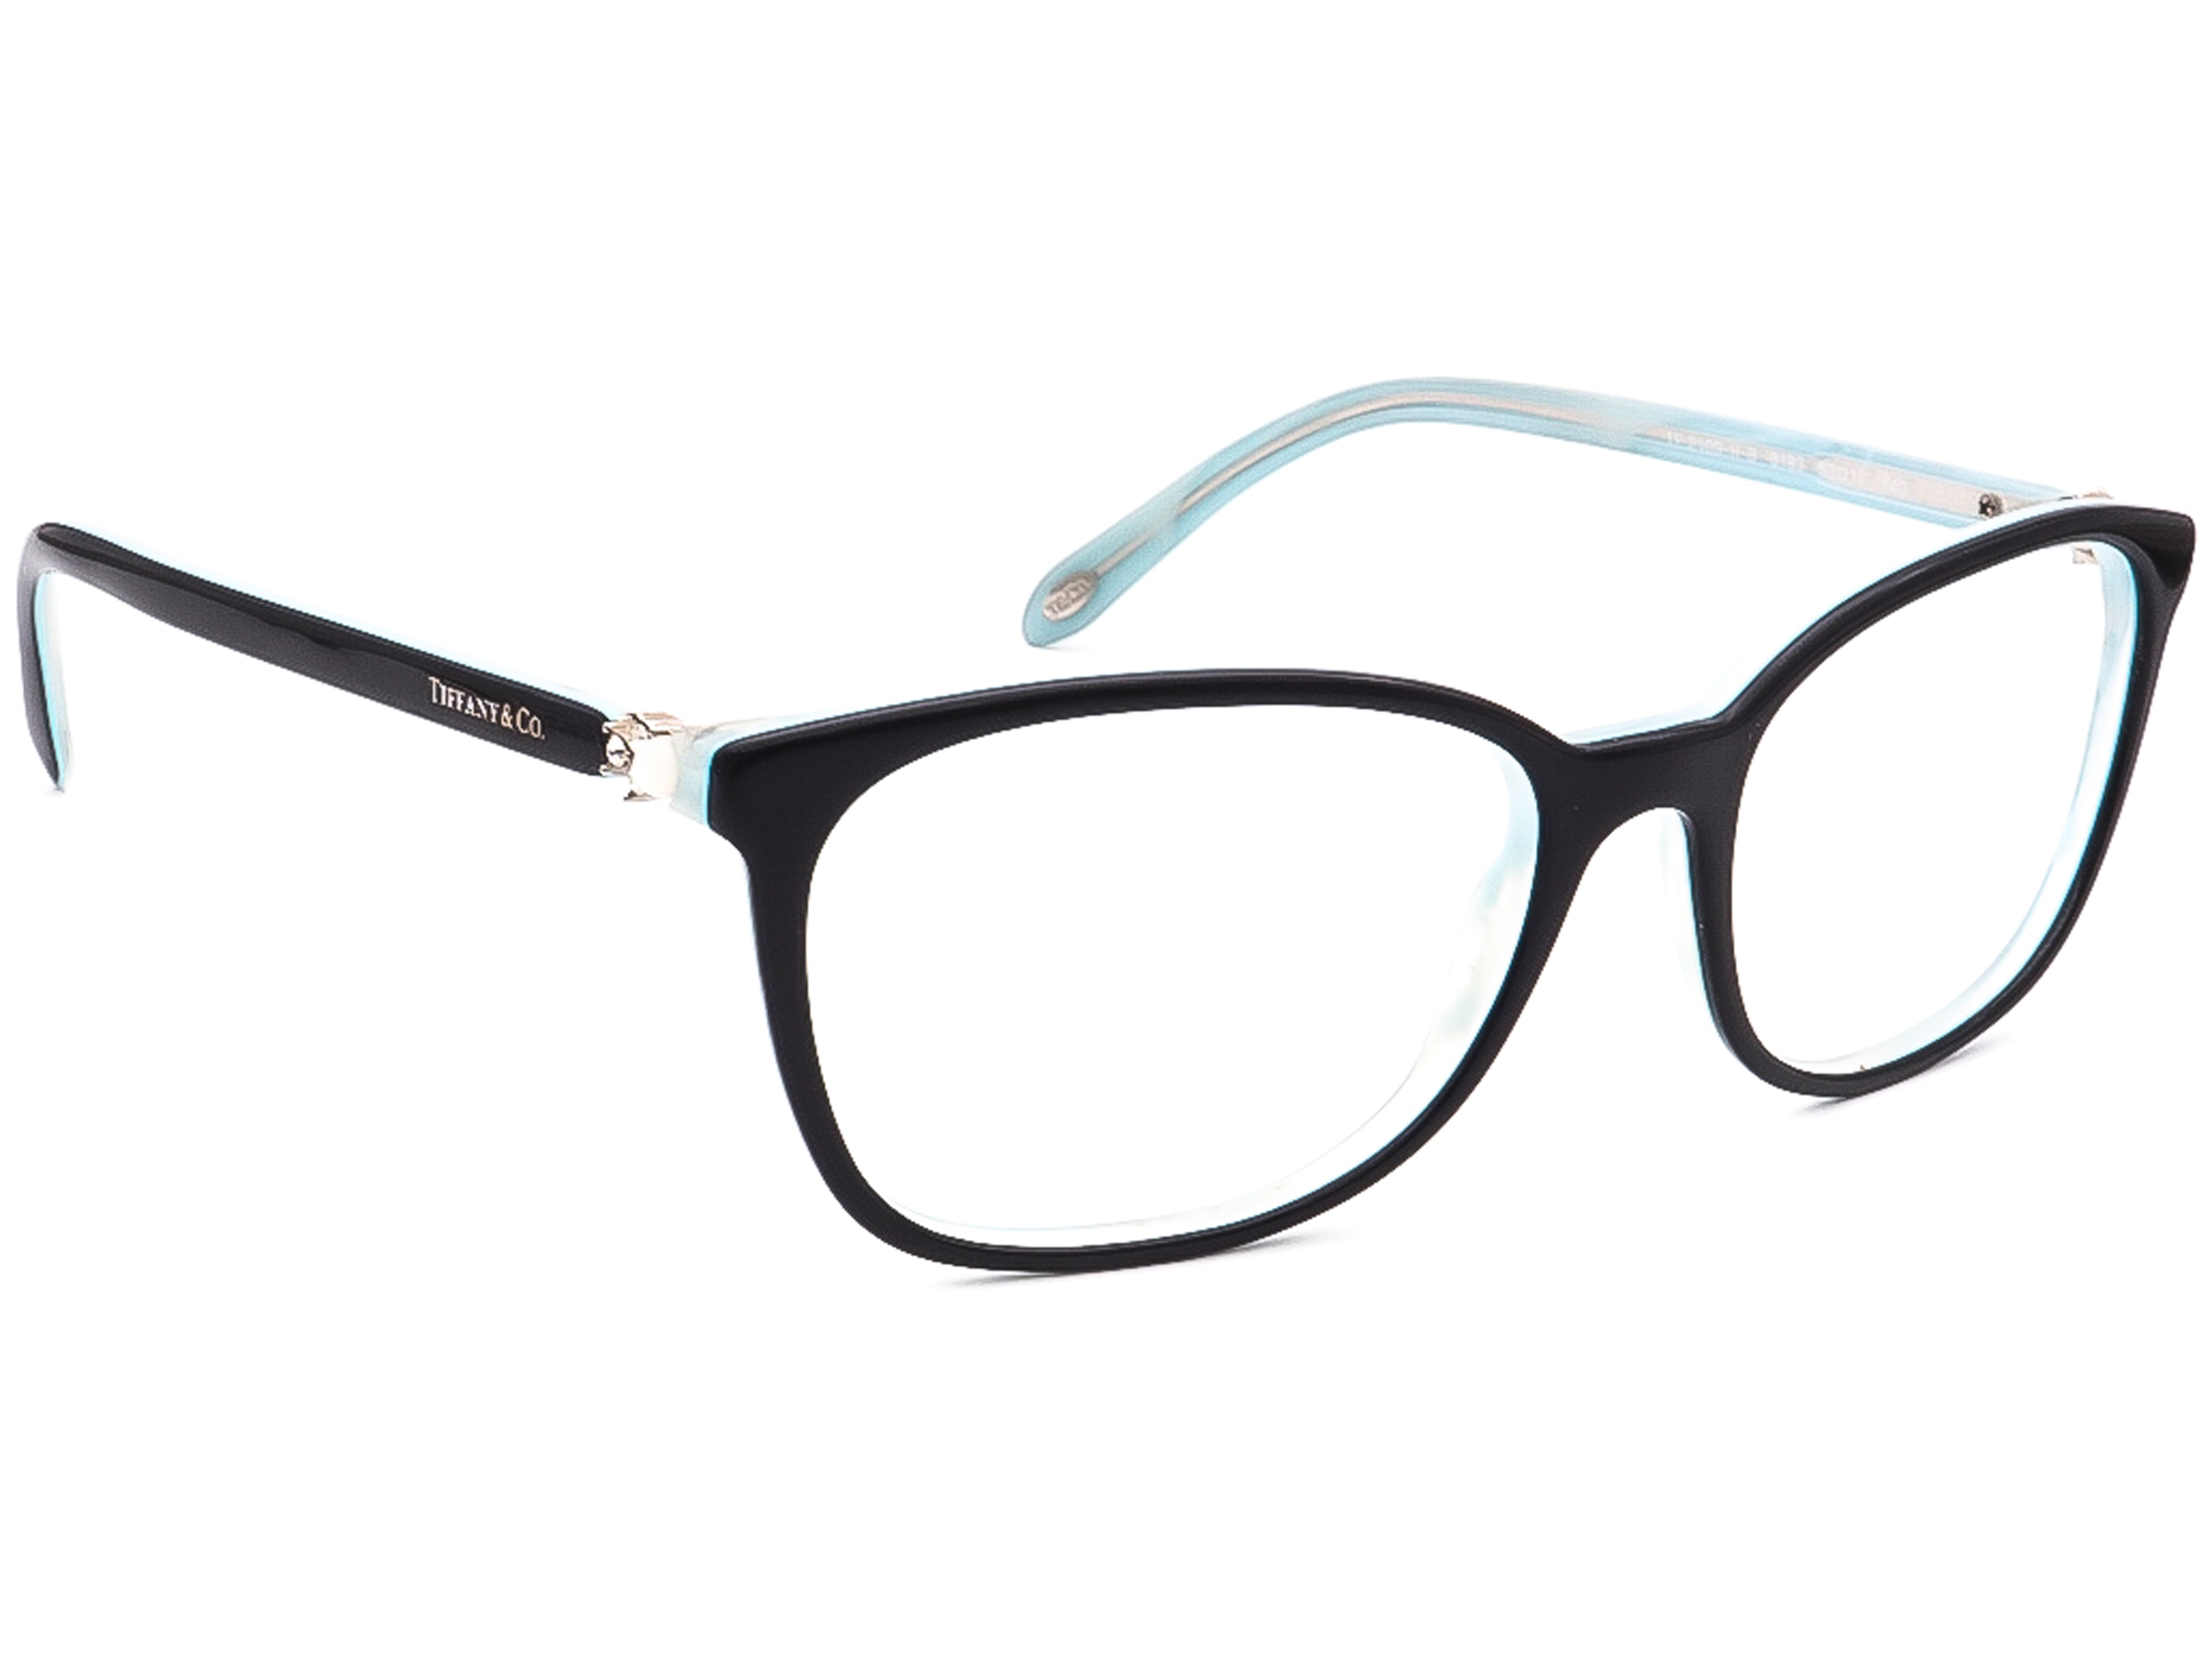 Tiffany & Co. TF 2109-H-B 8193 Eyeglasses